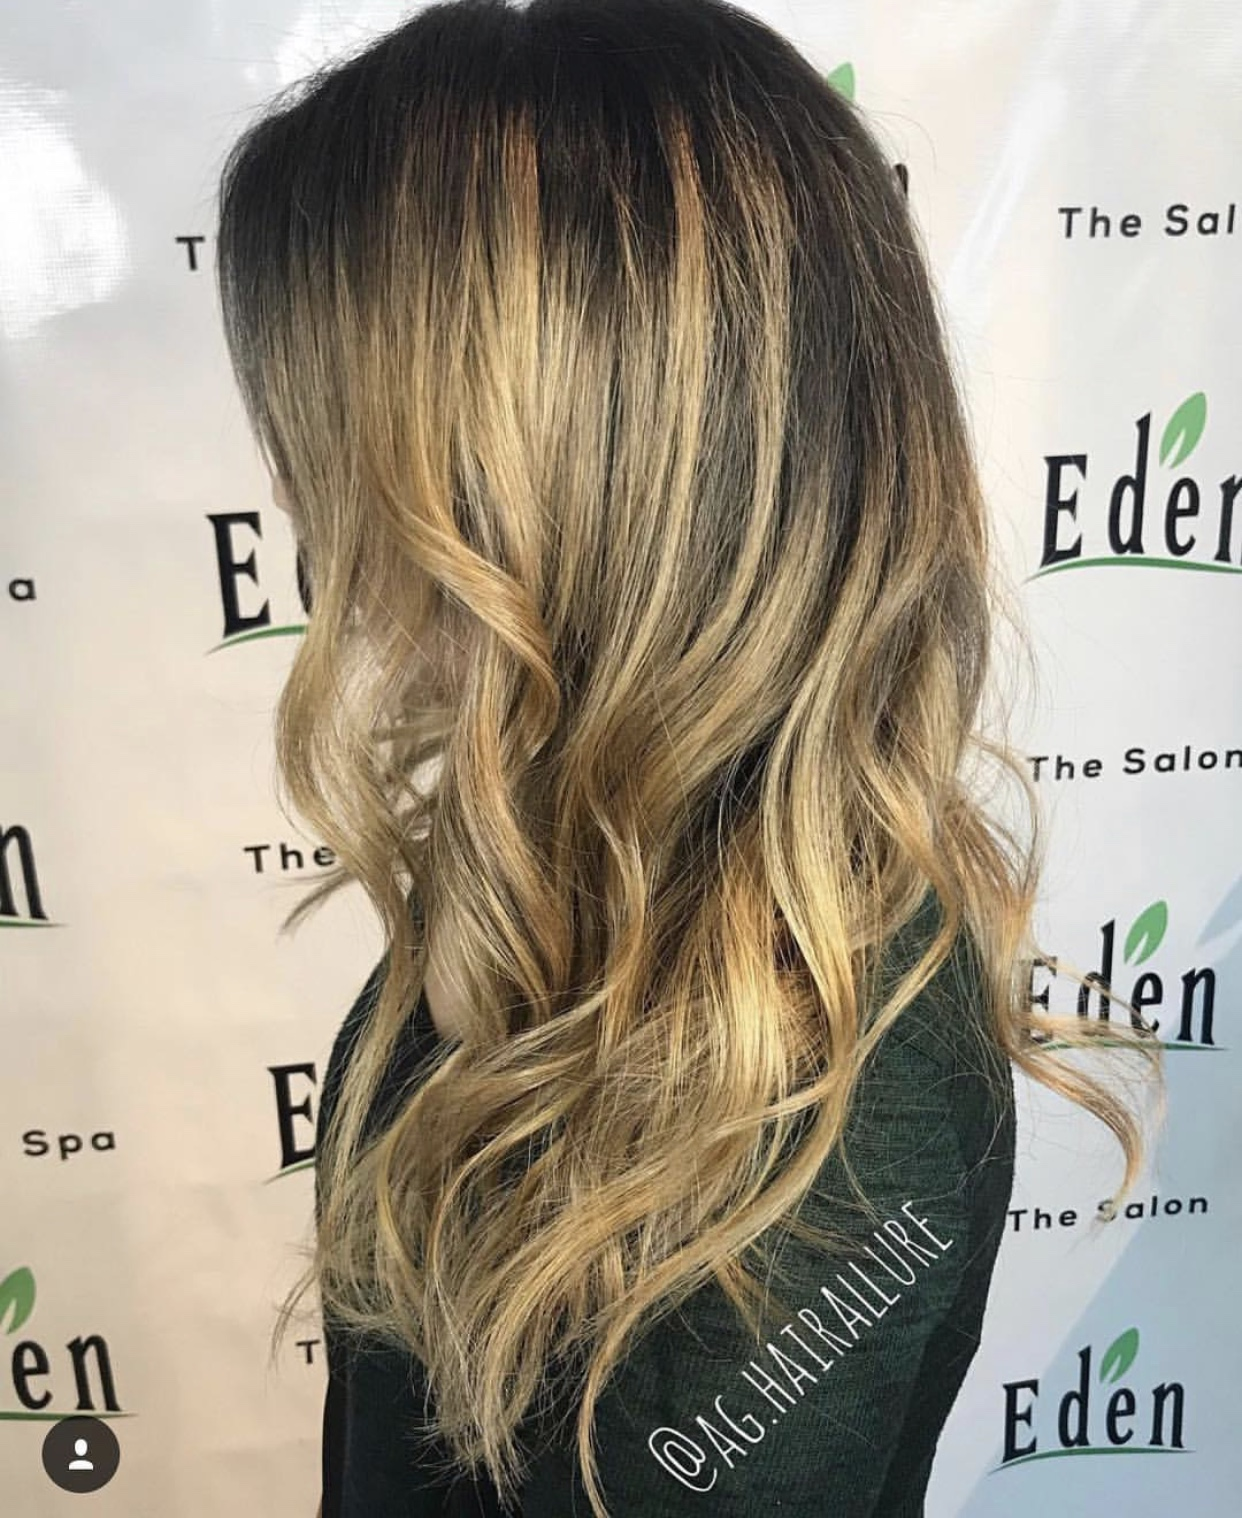 eden_vero_beach_hair_salon_08.jpg